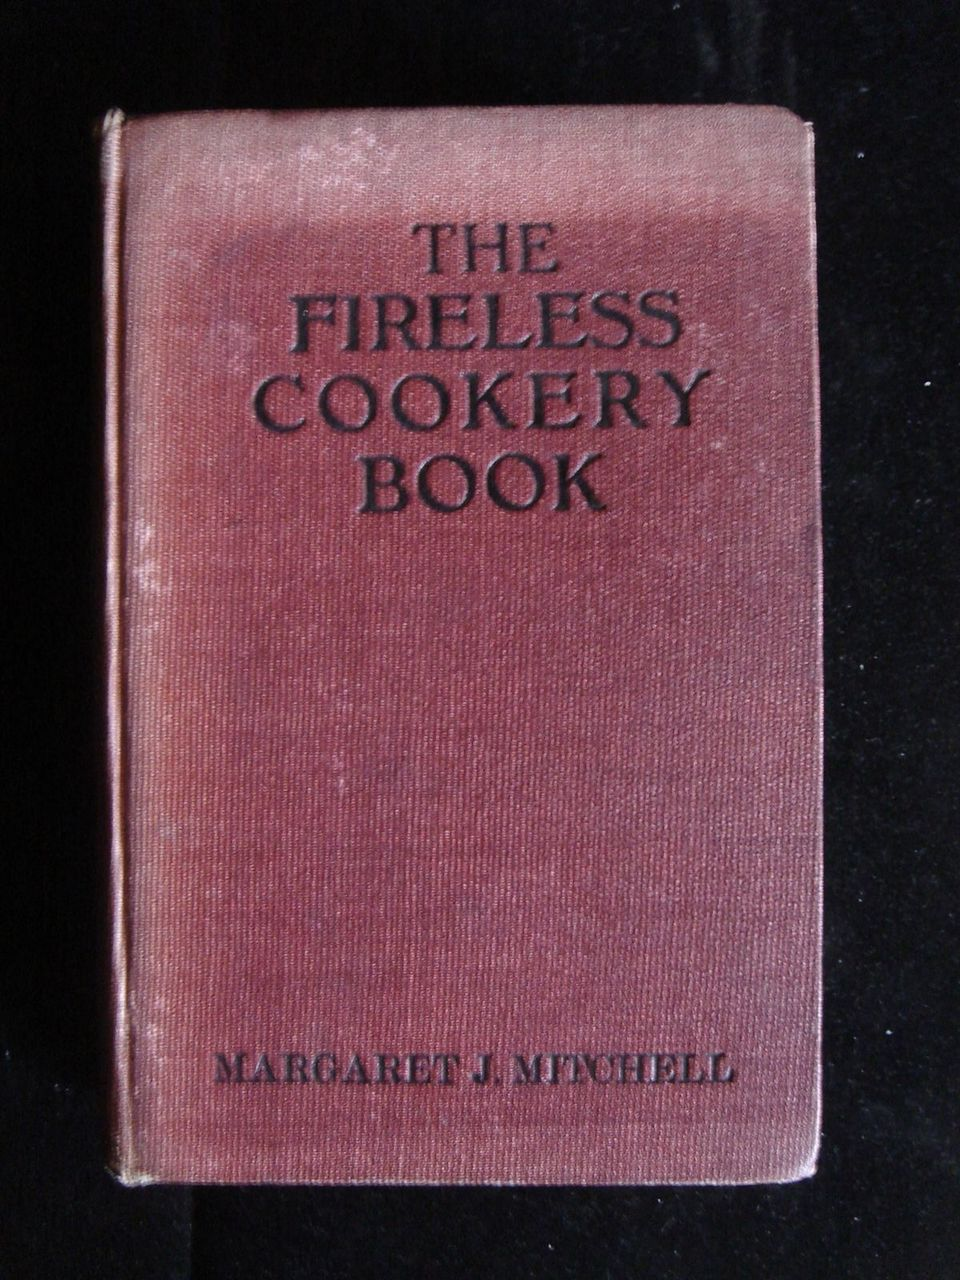 THE FIRELESS COOK BOOK, by Margaret J. Mitchell - 1910